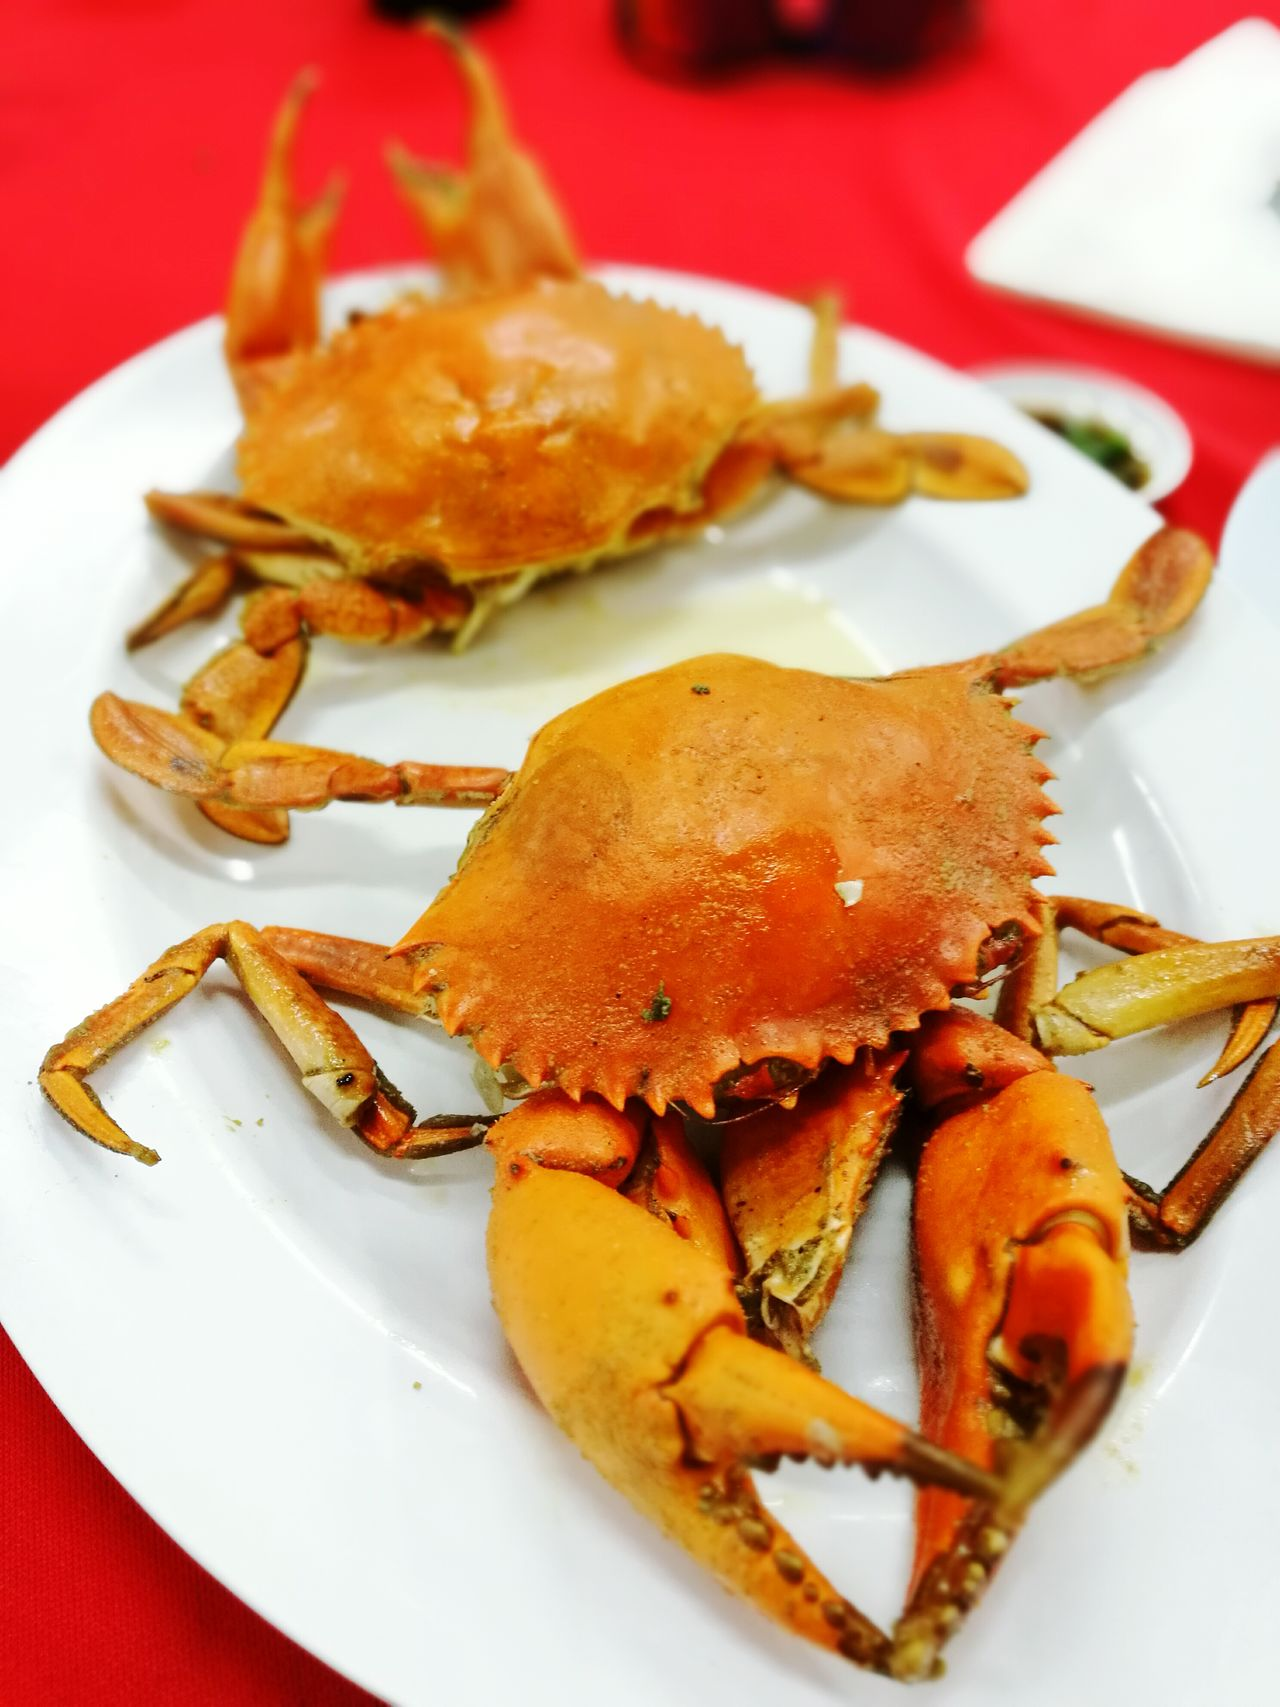 Crabs Celebration Food Plate Ready-to-eat Indoors  No People Crab Crabs Crab - Seafood Seafood Lovers Saltbakedcrabs